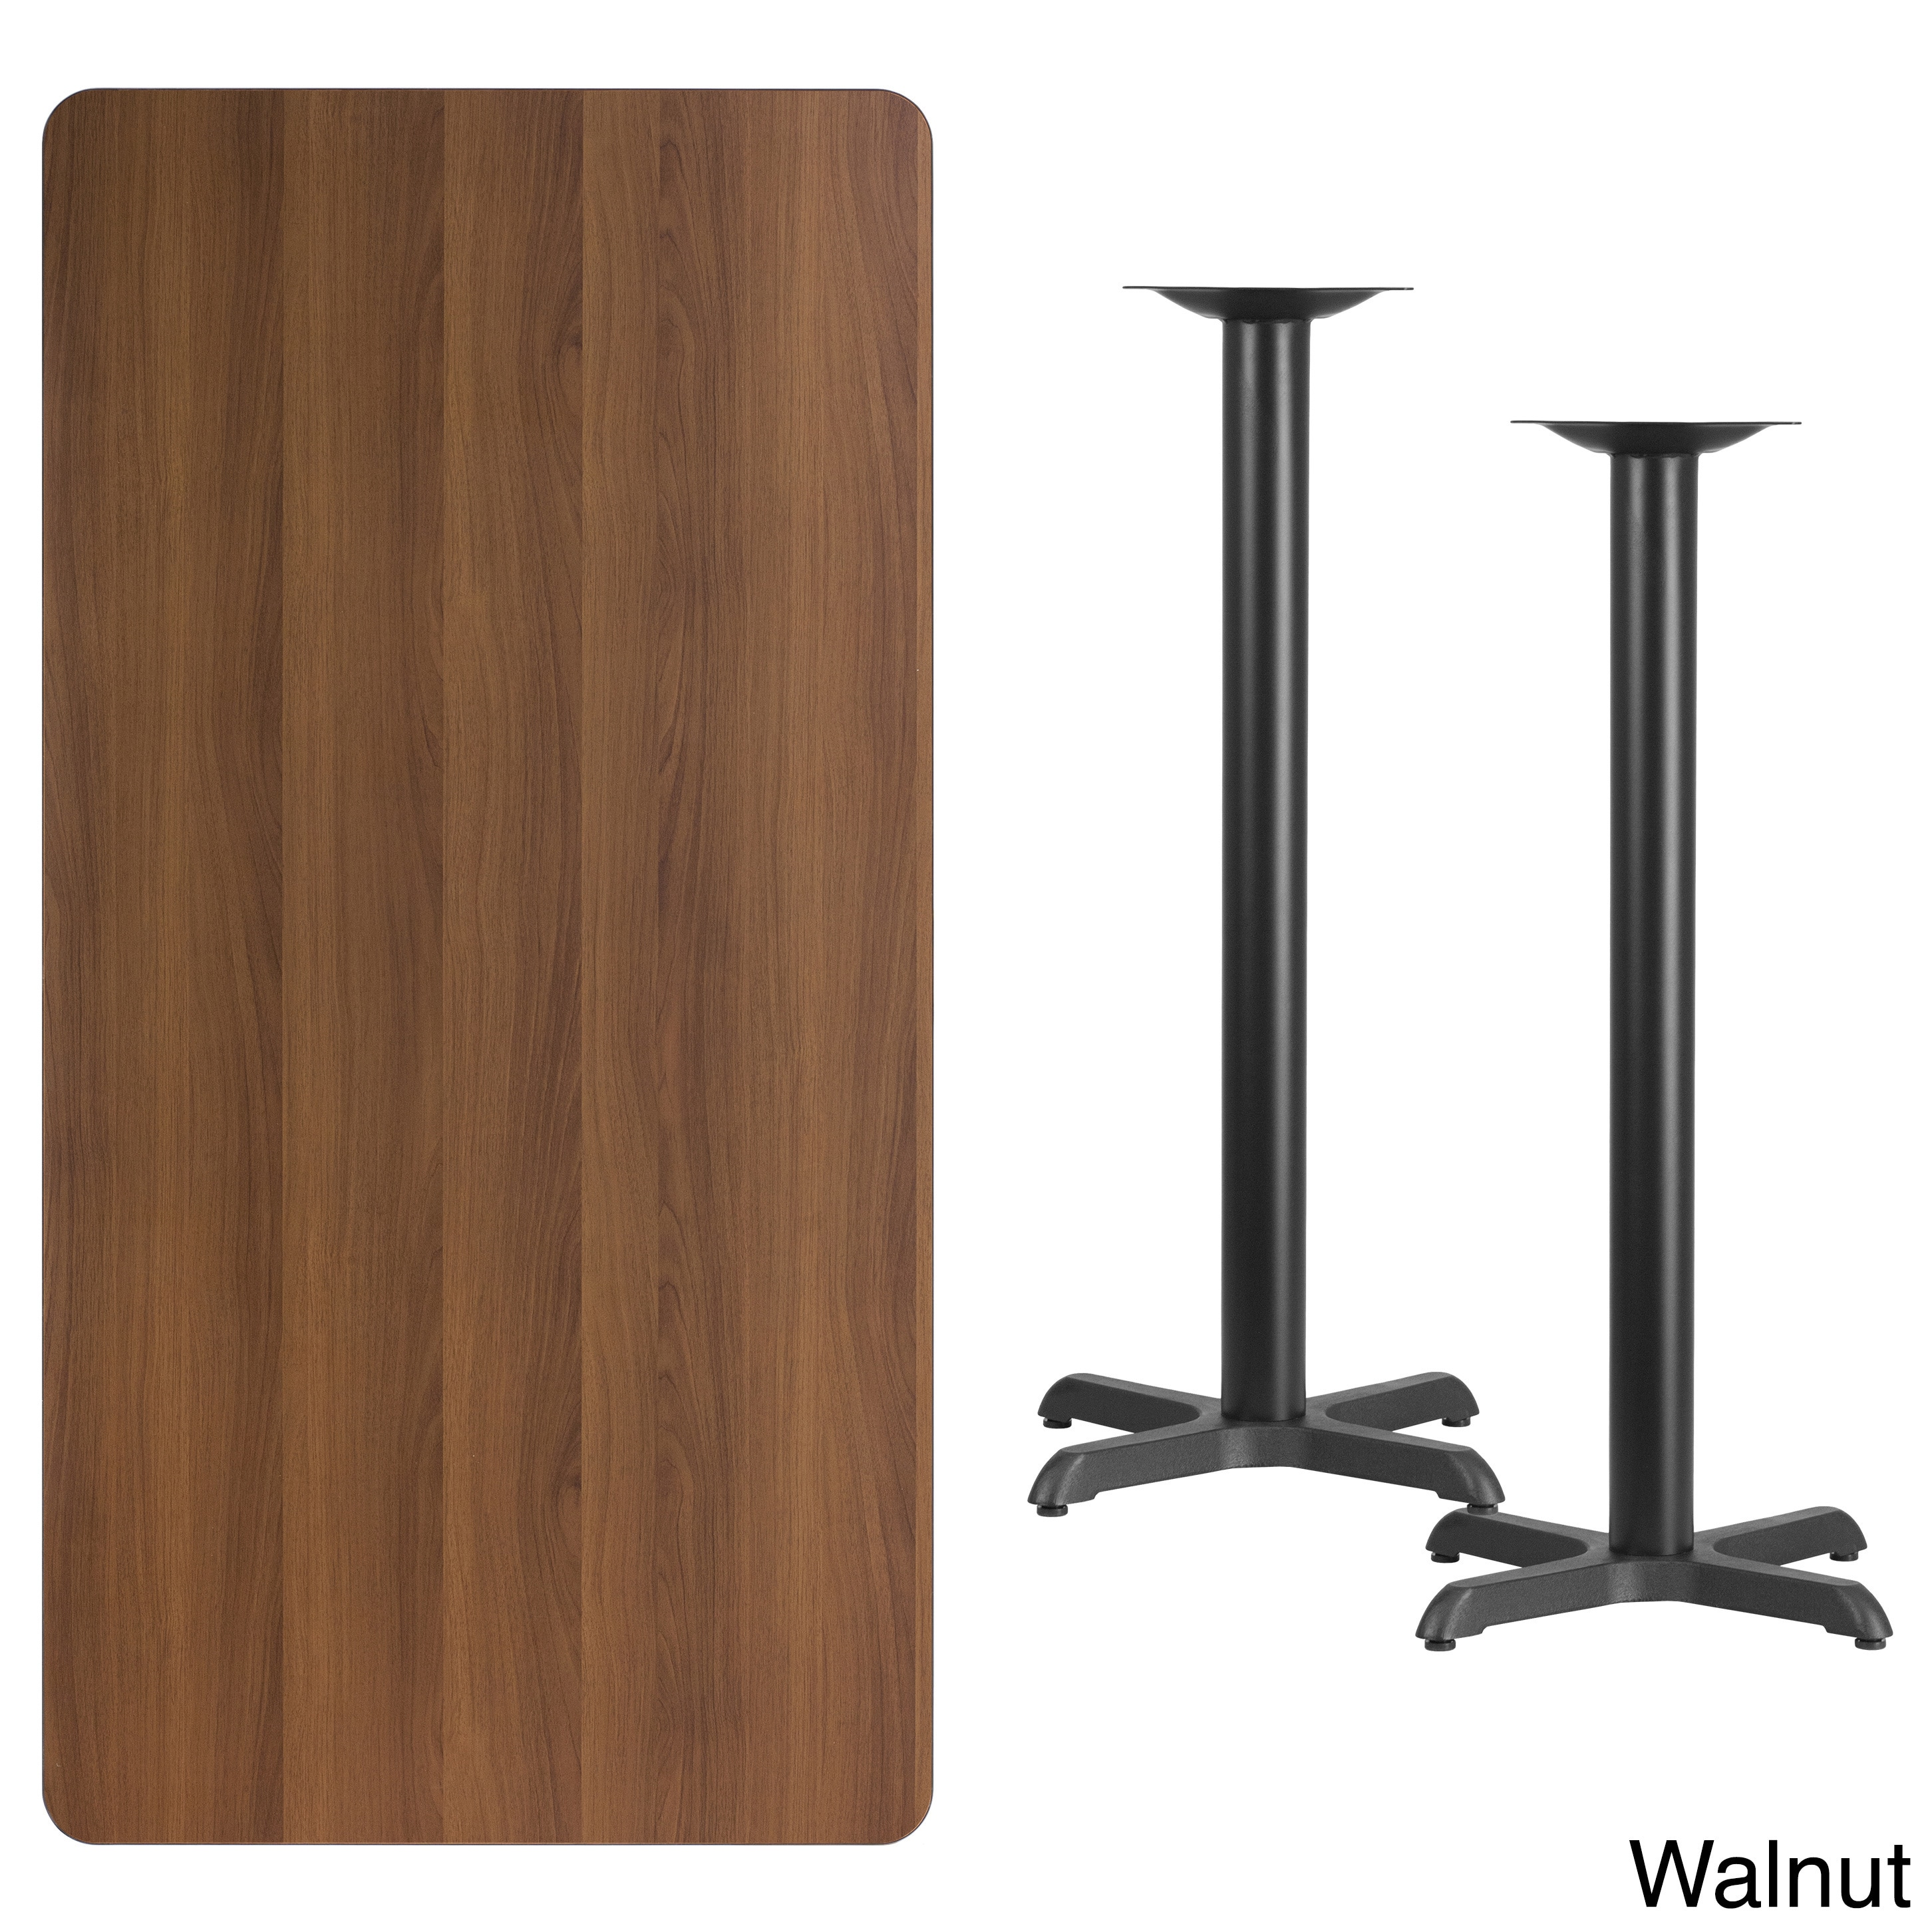 Lancaster Home 30x60-inch Rectangular Laminate Table Top with 22x22-inch Bar Height Table Bases